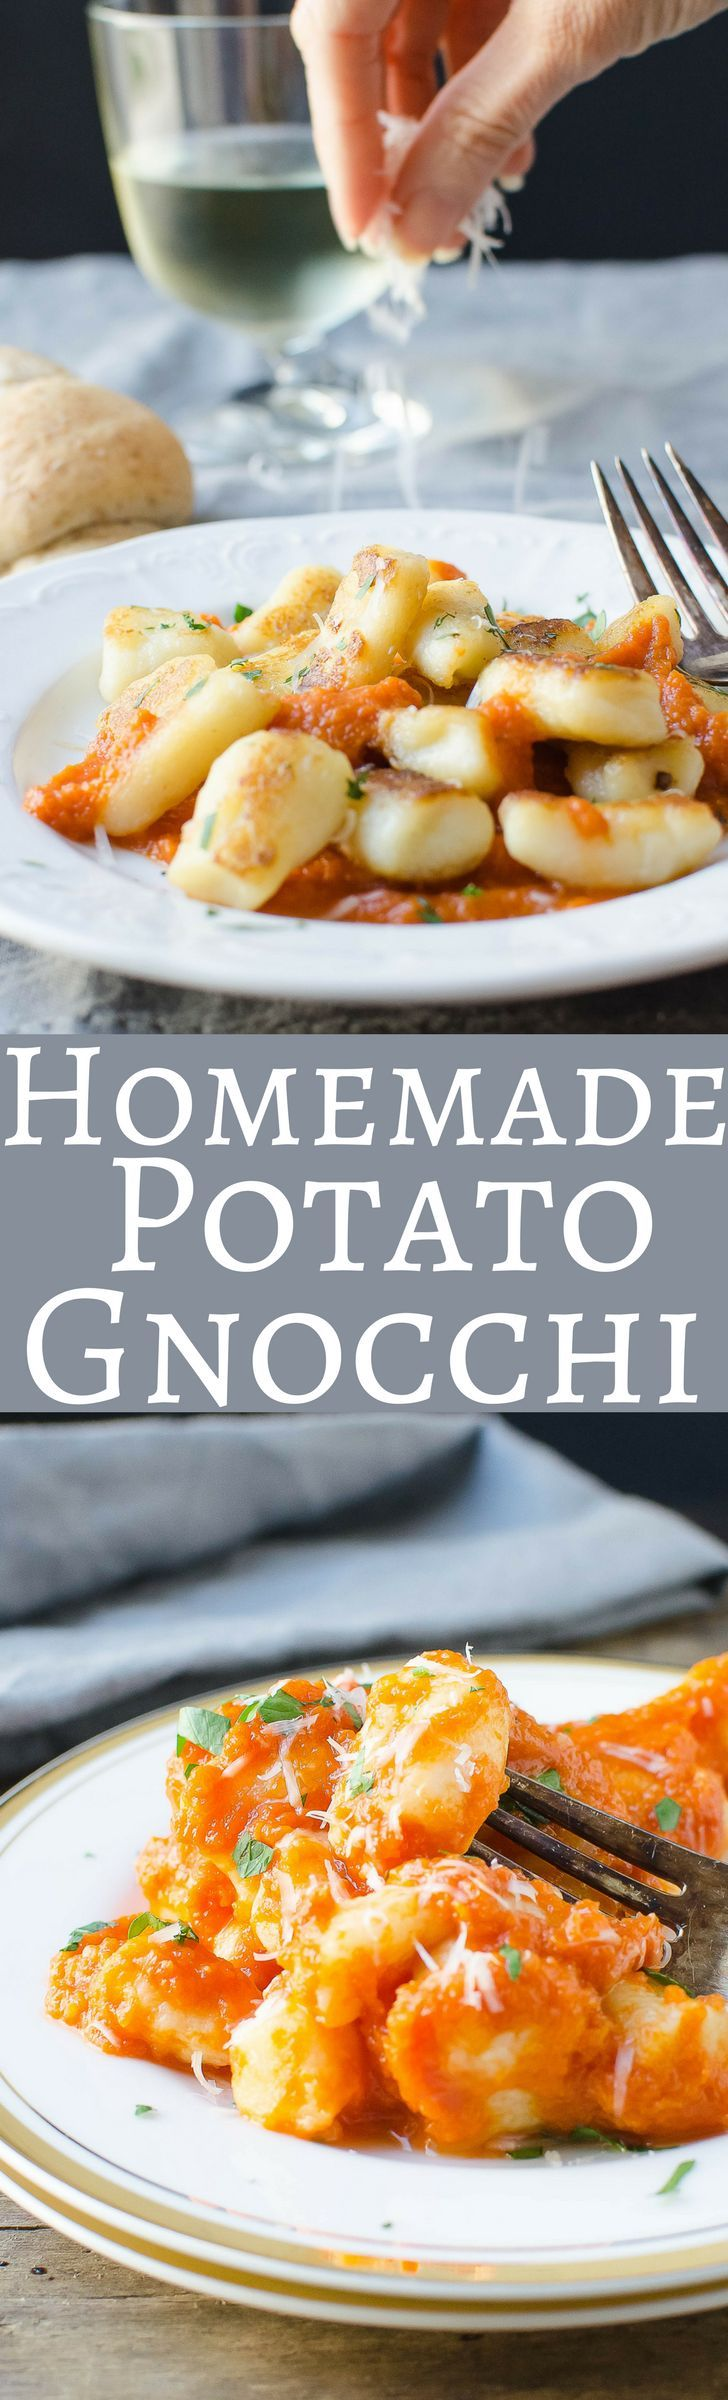 A classic recipe for homemade potato gnocchi! This one makes pillowy soft dumplings and can be frozen for a quick dinner anytime! (scheduled via http://www.tailwindapp.com?utm_source=pinterest&utm_medium=twpin&utm_content=post141252755&utm_campaign=scheduler_attribution)